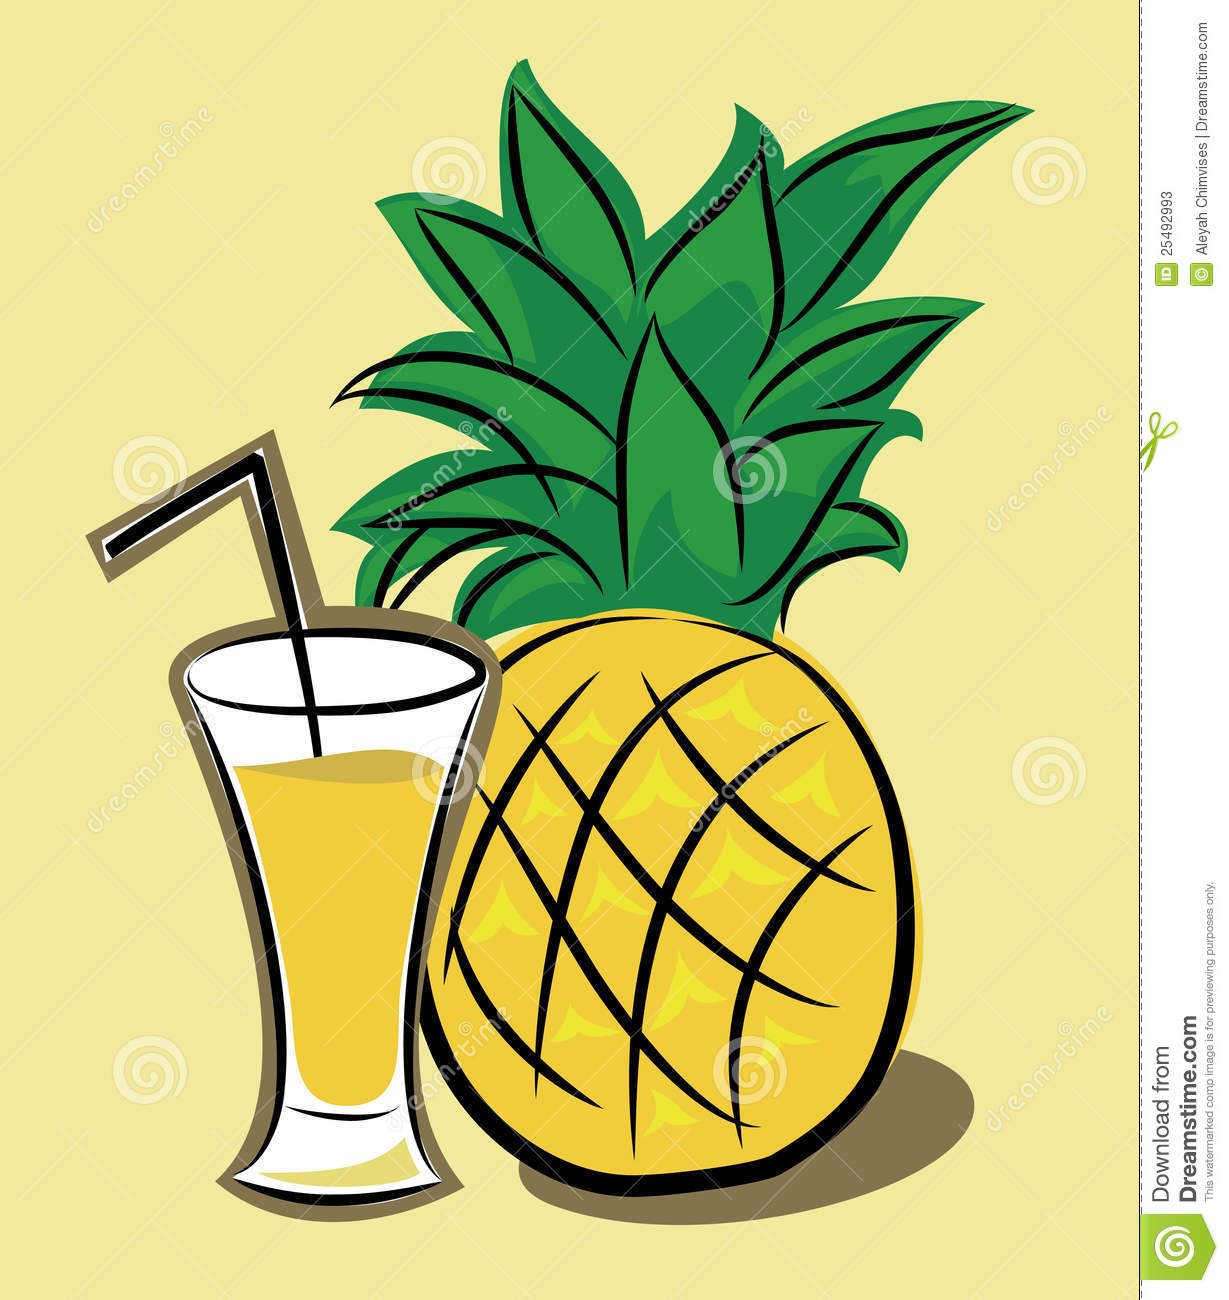 Juice clipart pineapple juice Images pineapple%20clipart Panda Clipart Free